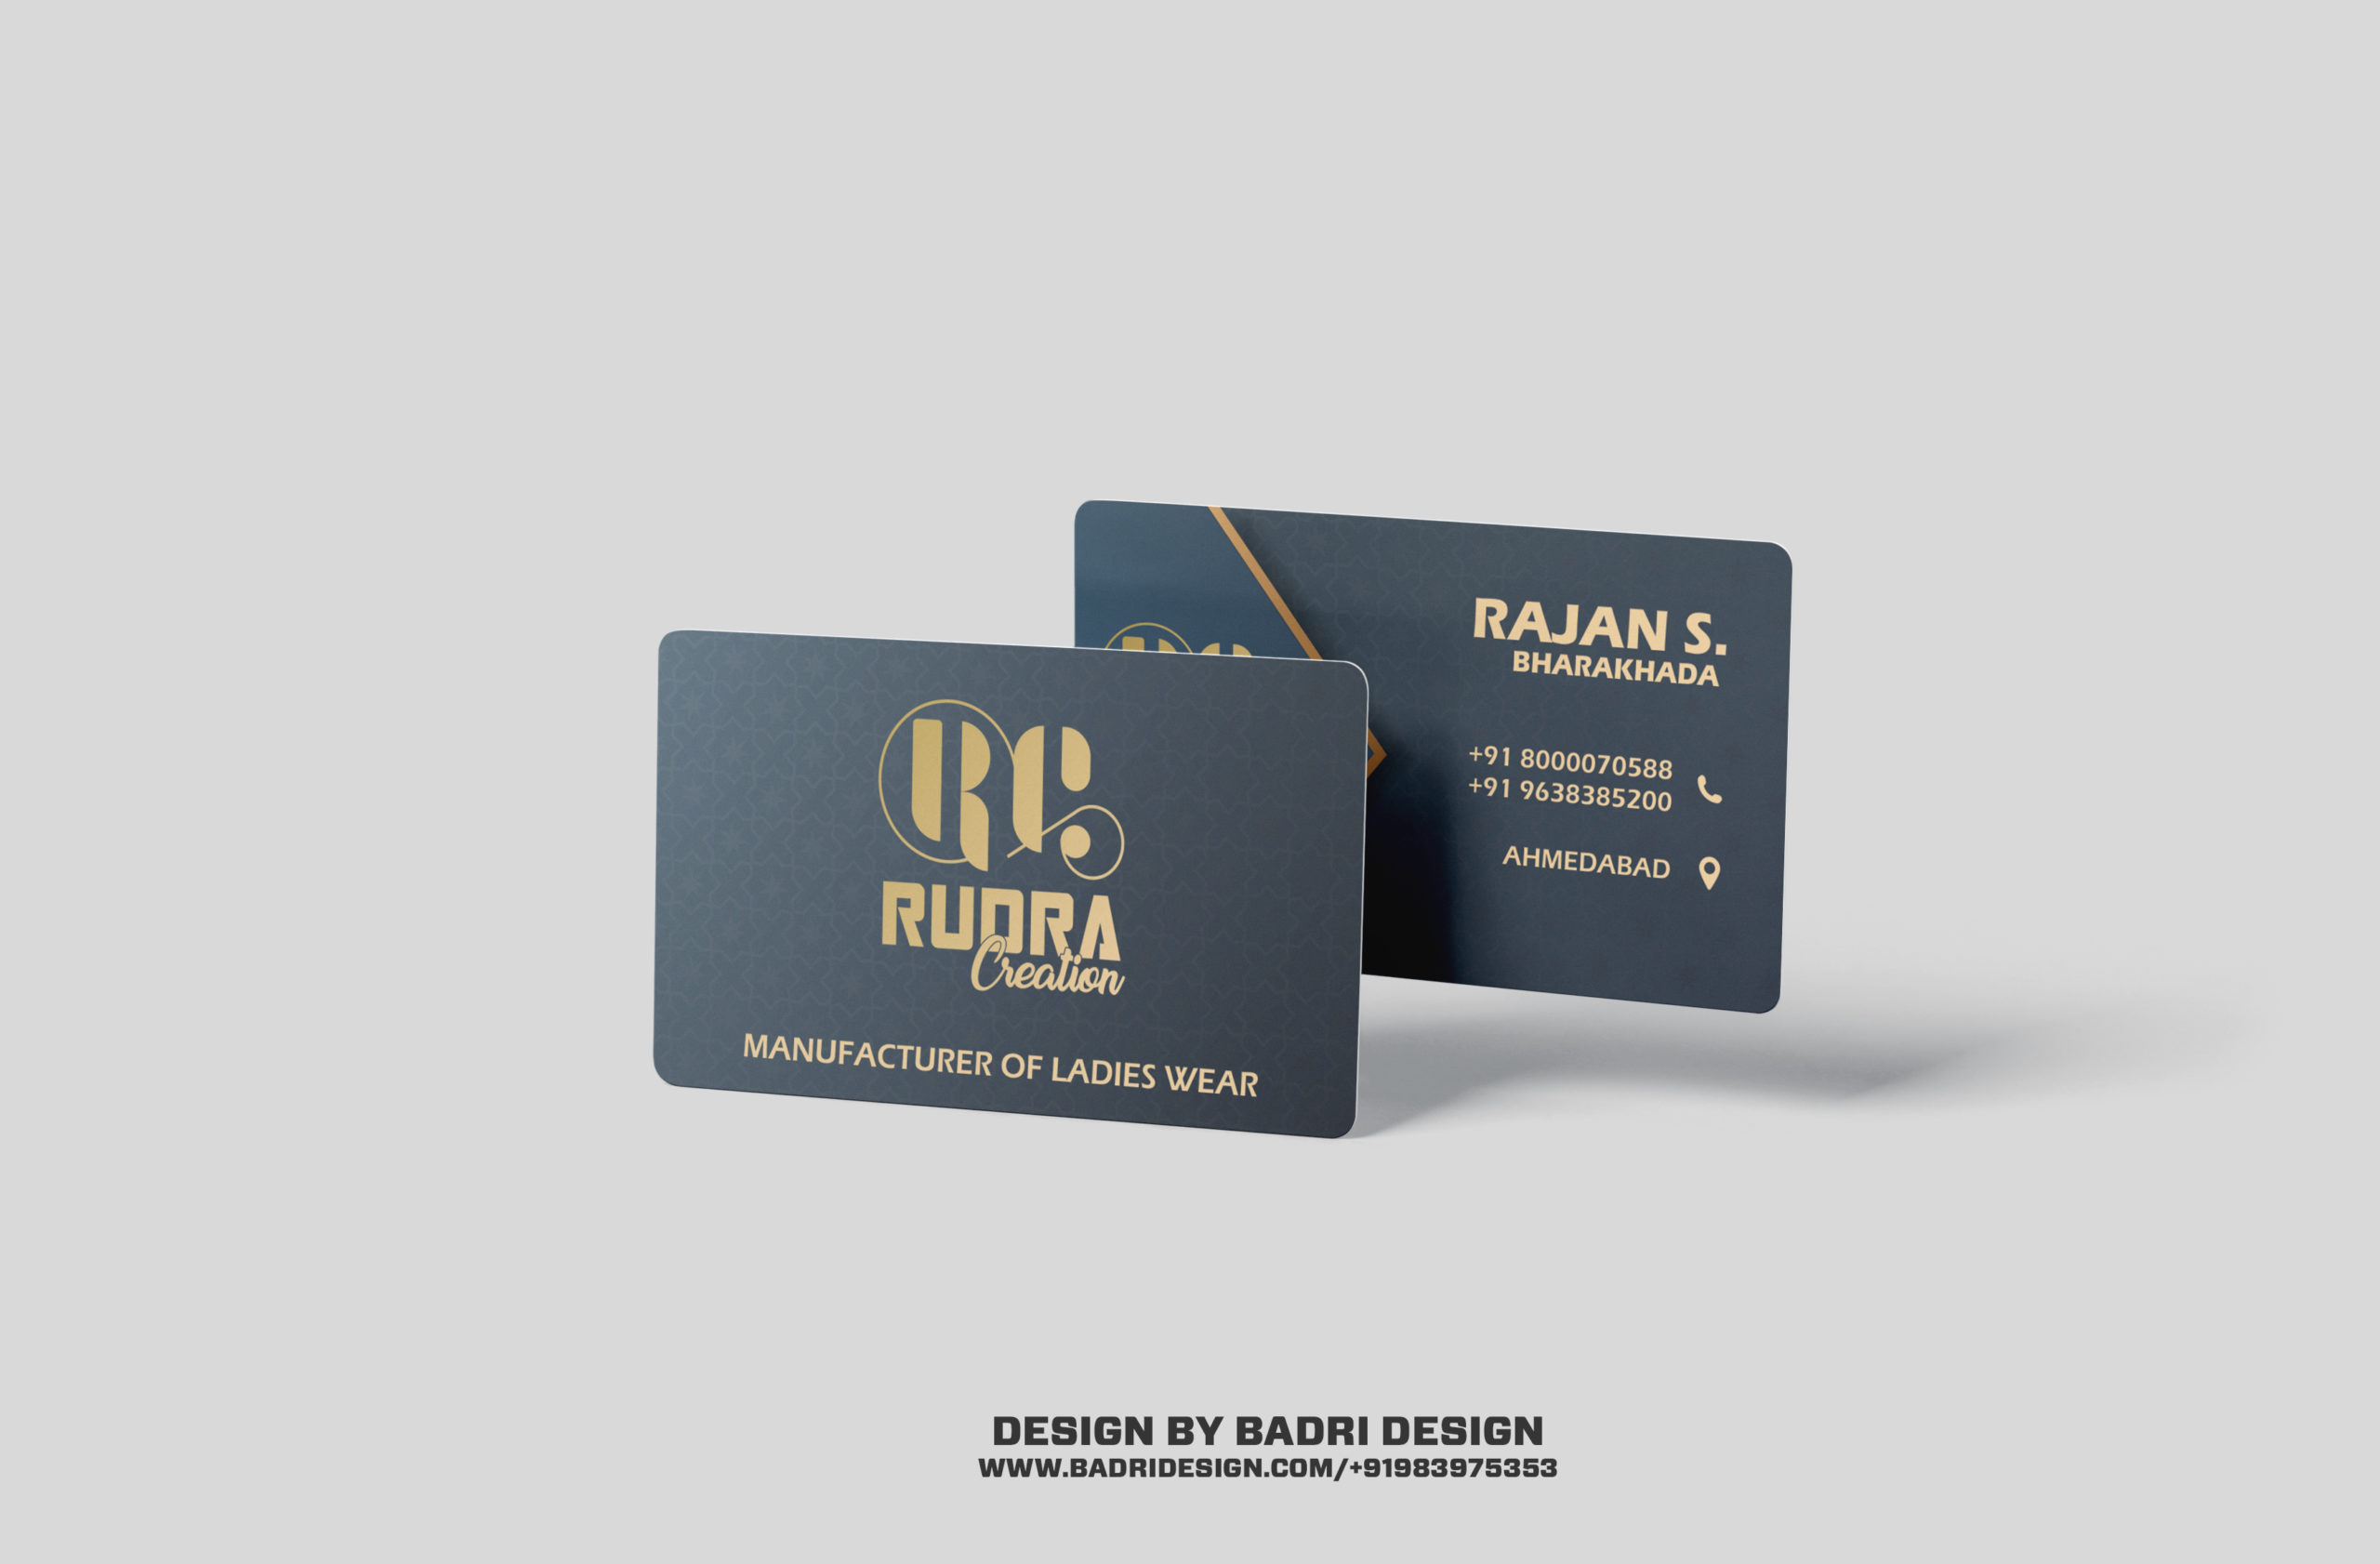 Rudra creation garment shop business card design by Badri Design